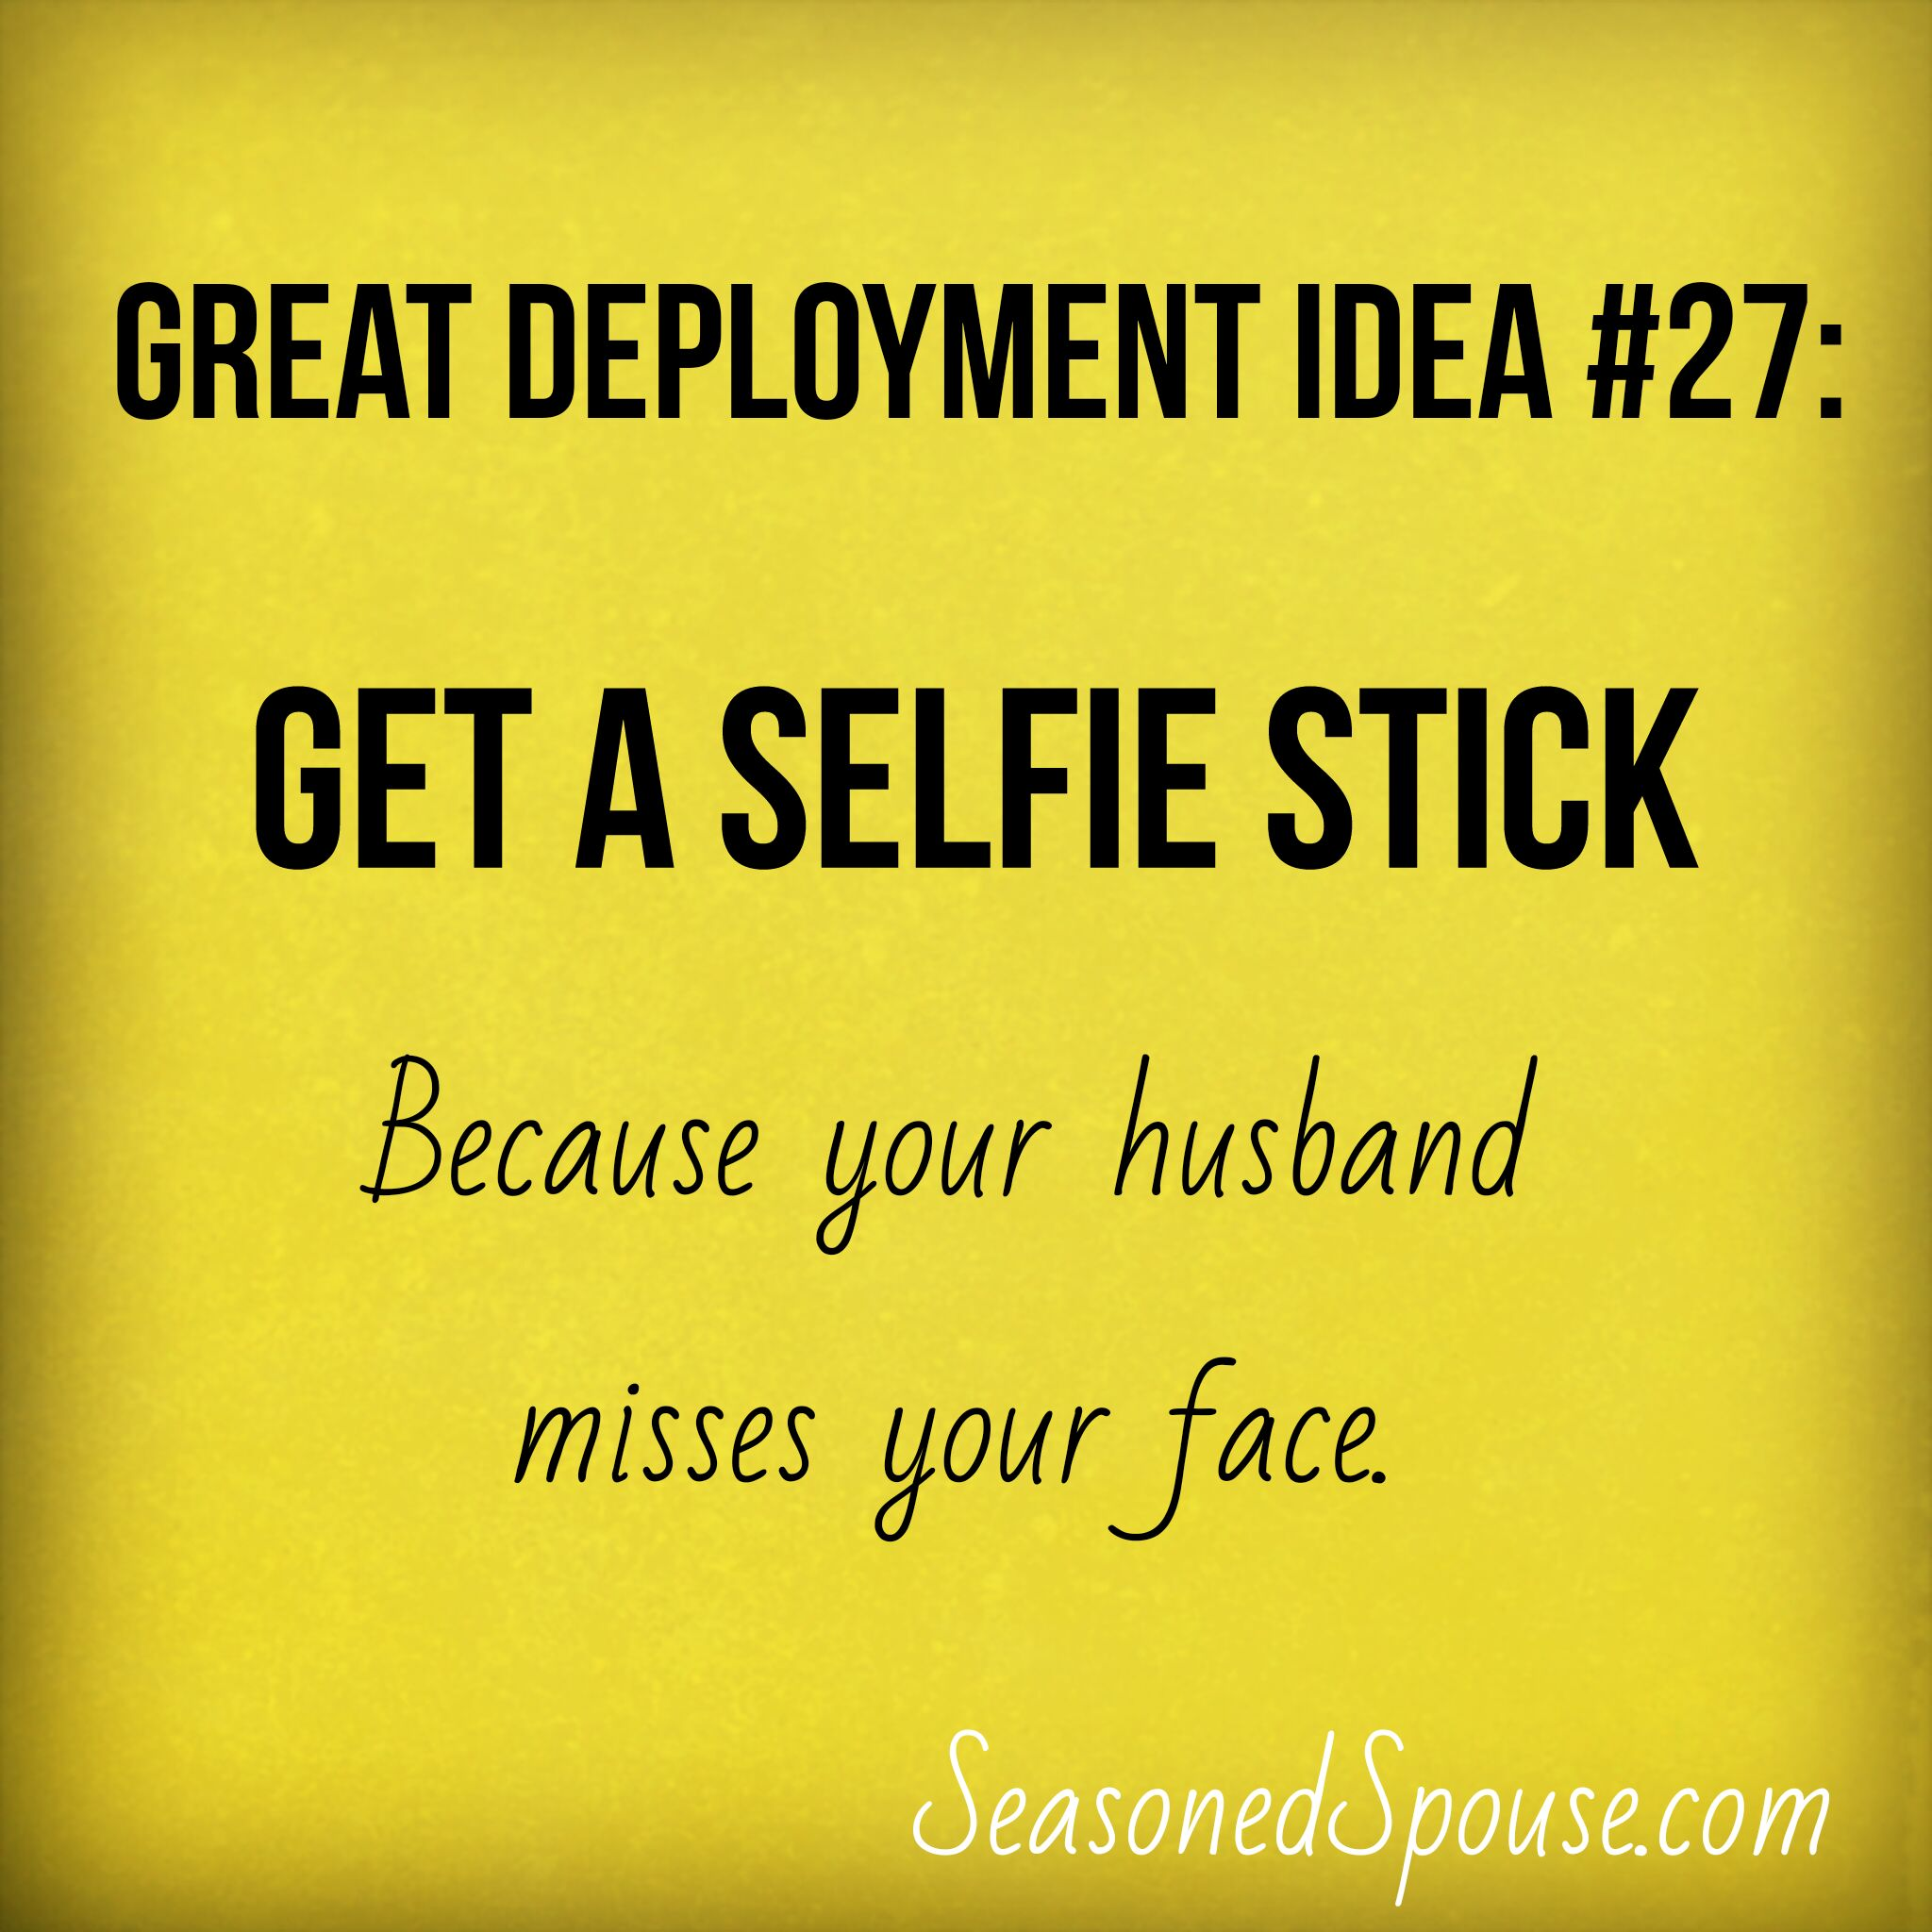 Why do you need a selfie stick? Because during military deployment, there is no one to take pictures of you!